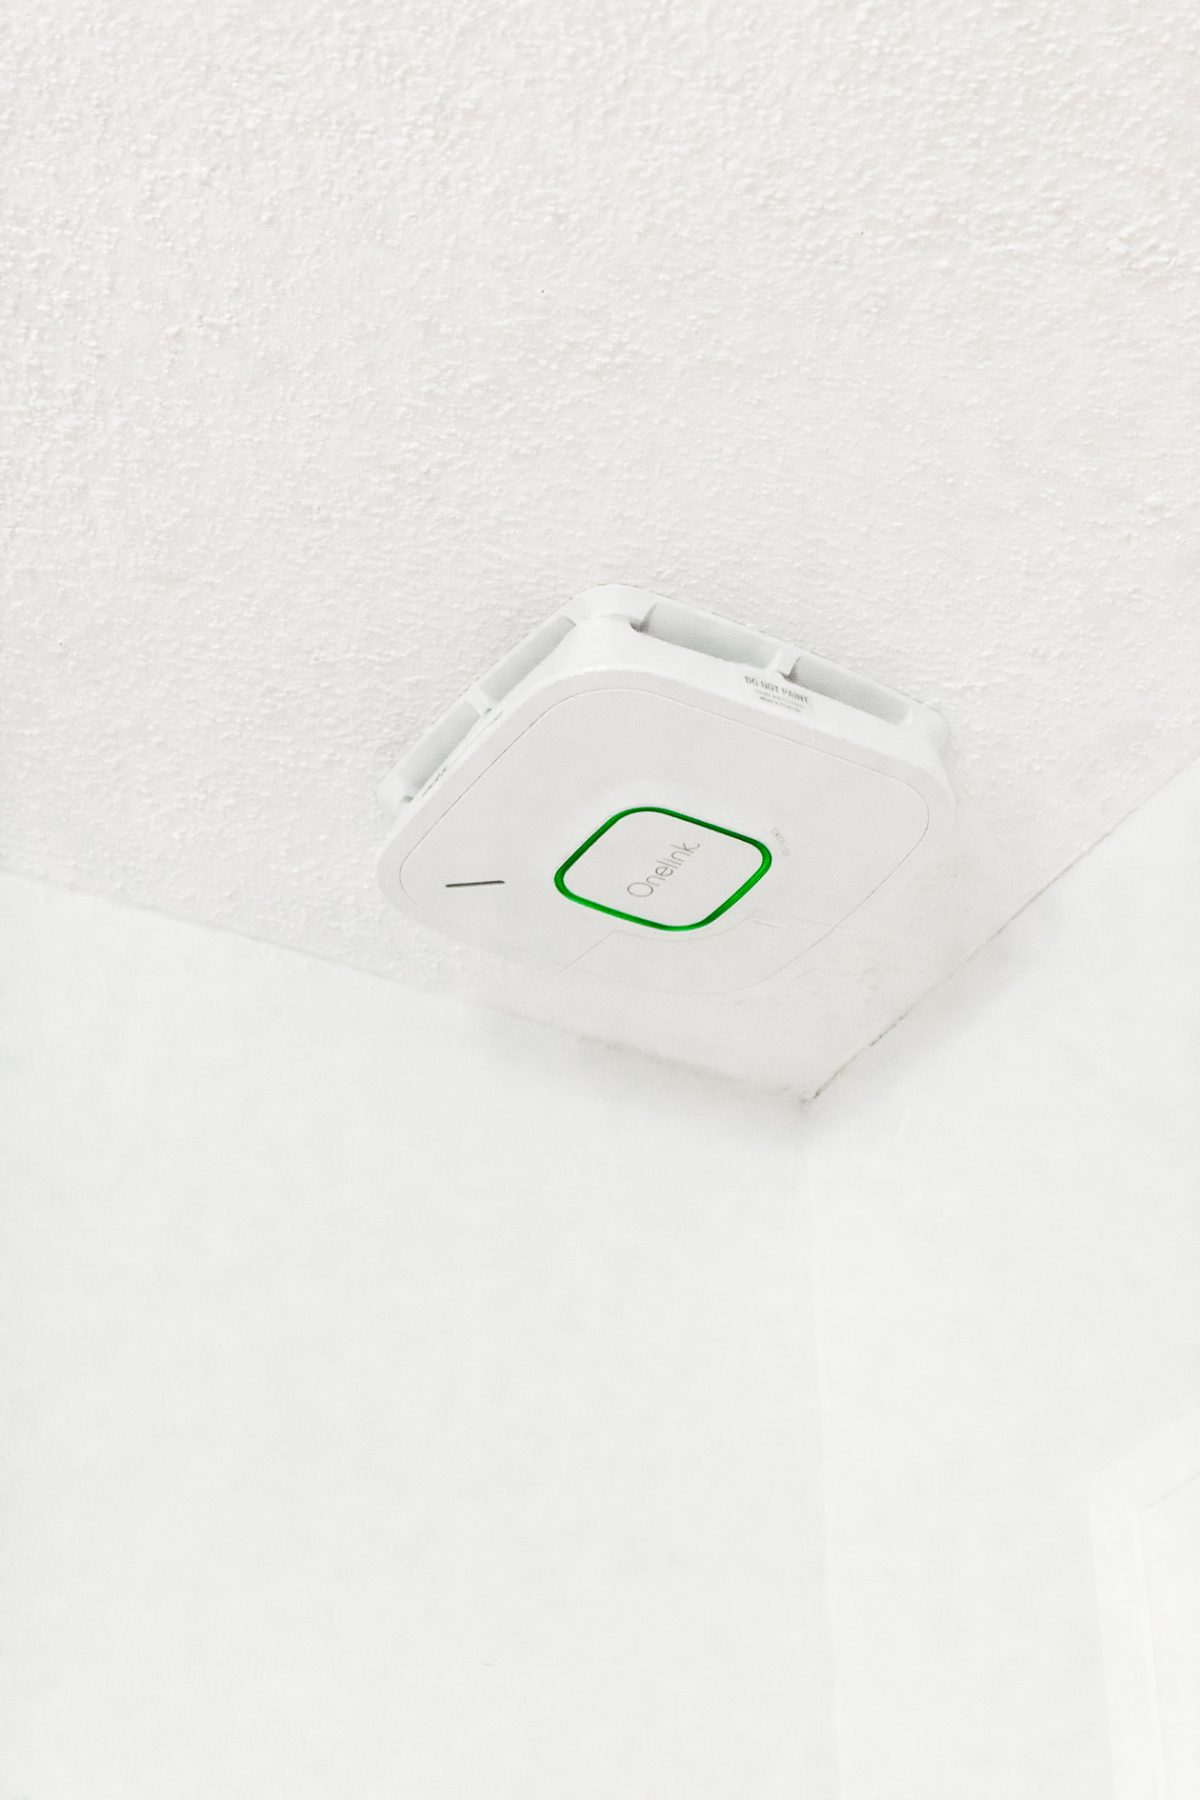 Fire Alarm on Ceiling in Bedroom - How to Keep Your Family Safe with Onelink Smart Smoke & Carbon Monoxide Alarm